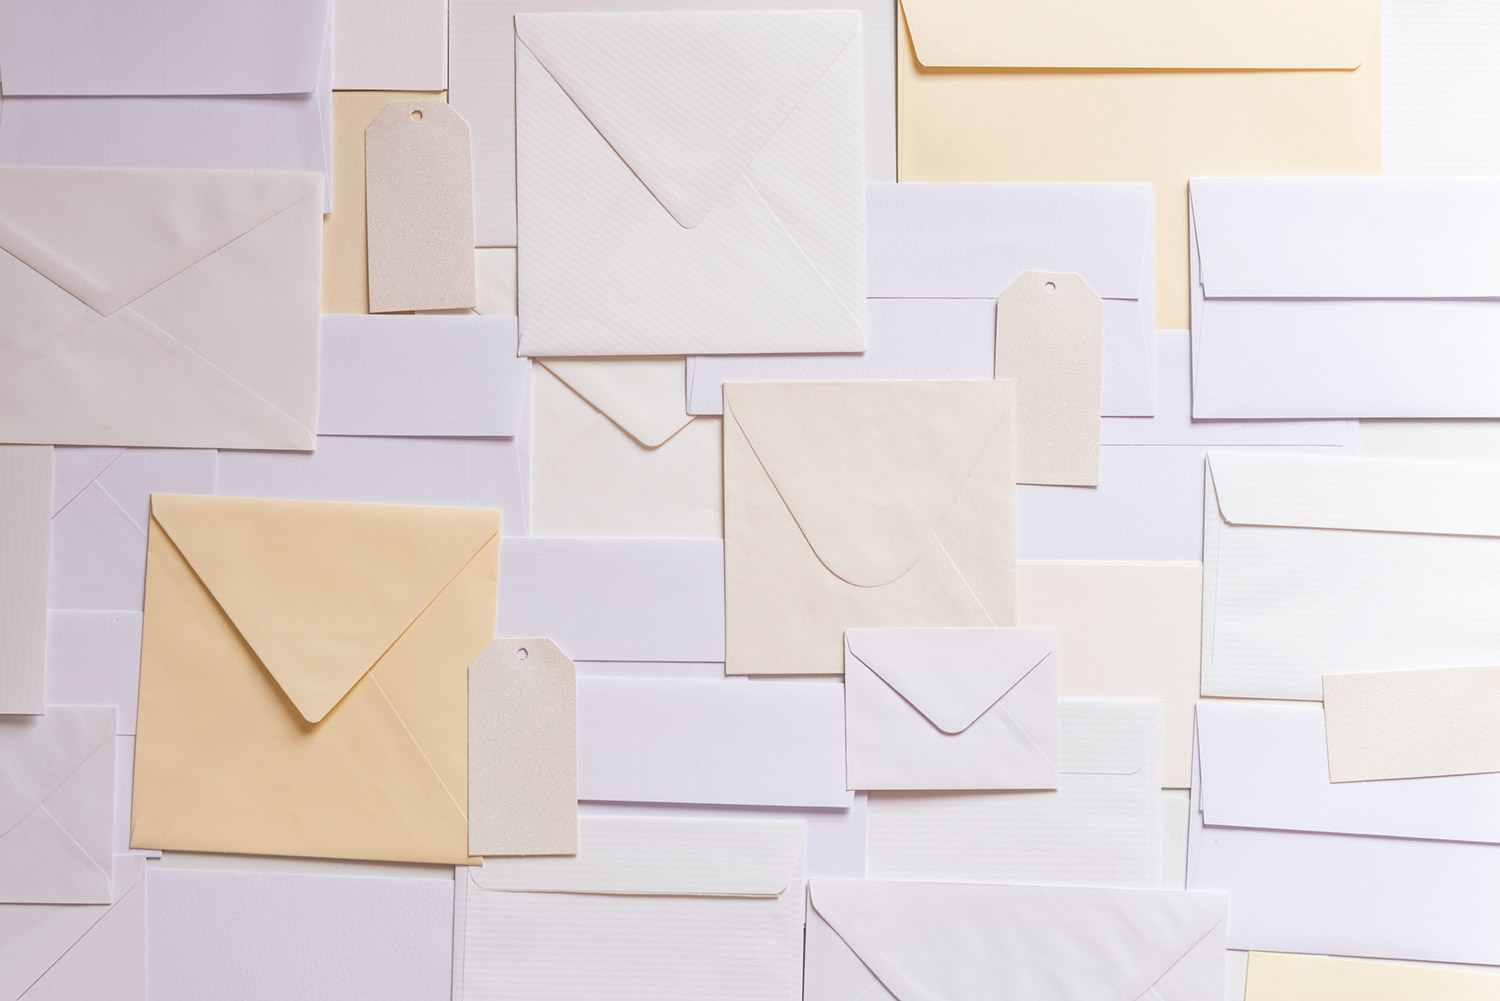 Collage of envelopes of different colors and sizes